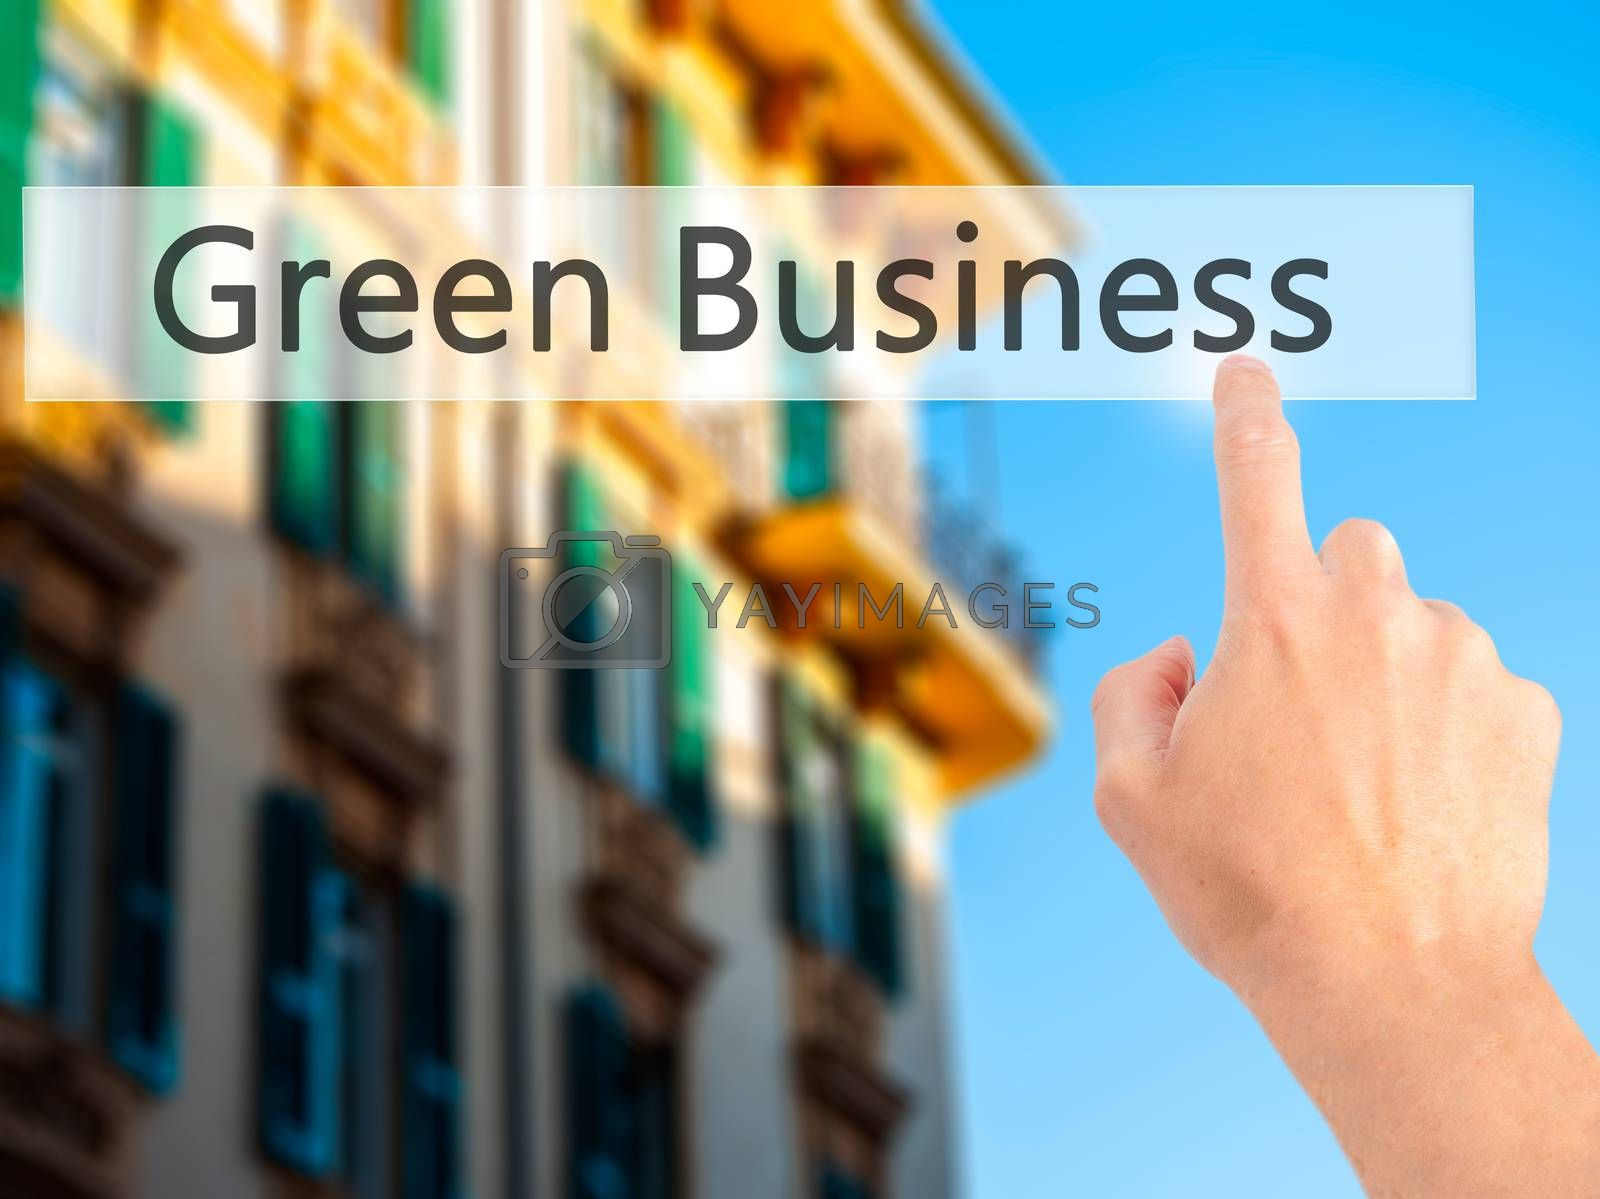 Green Business  - Hand pressing a button on blurred background c by netsay.net